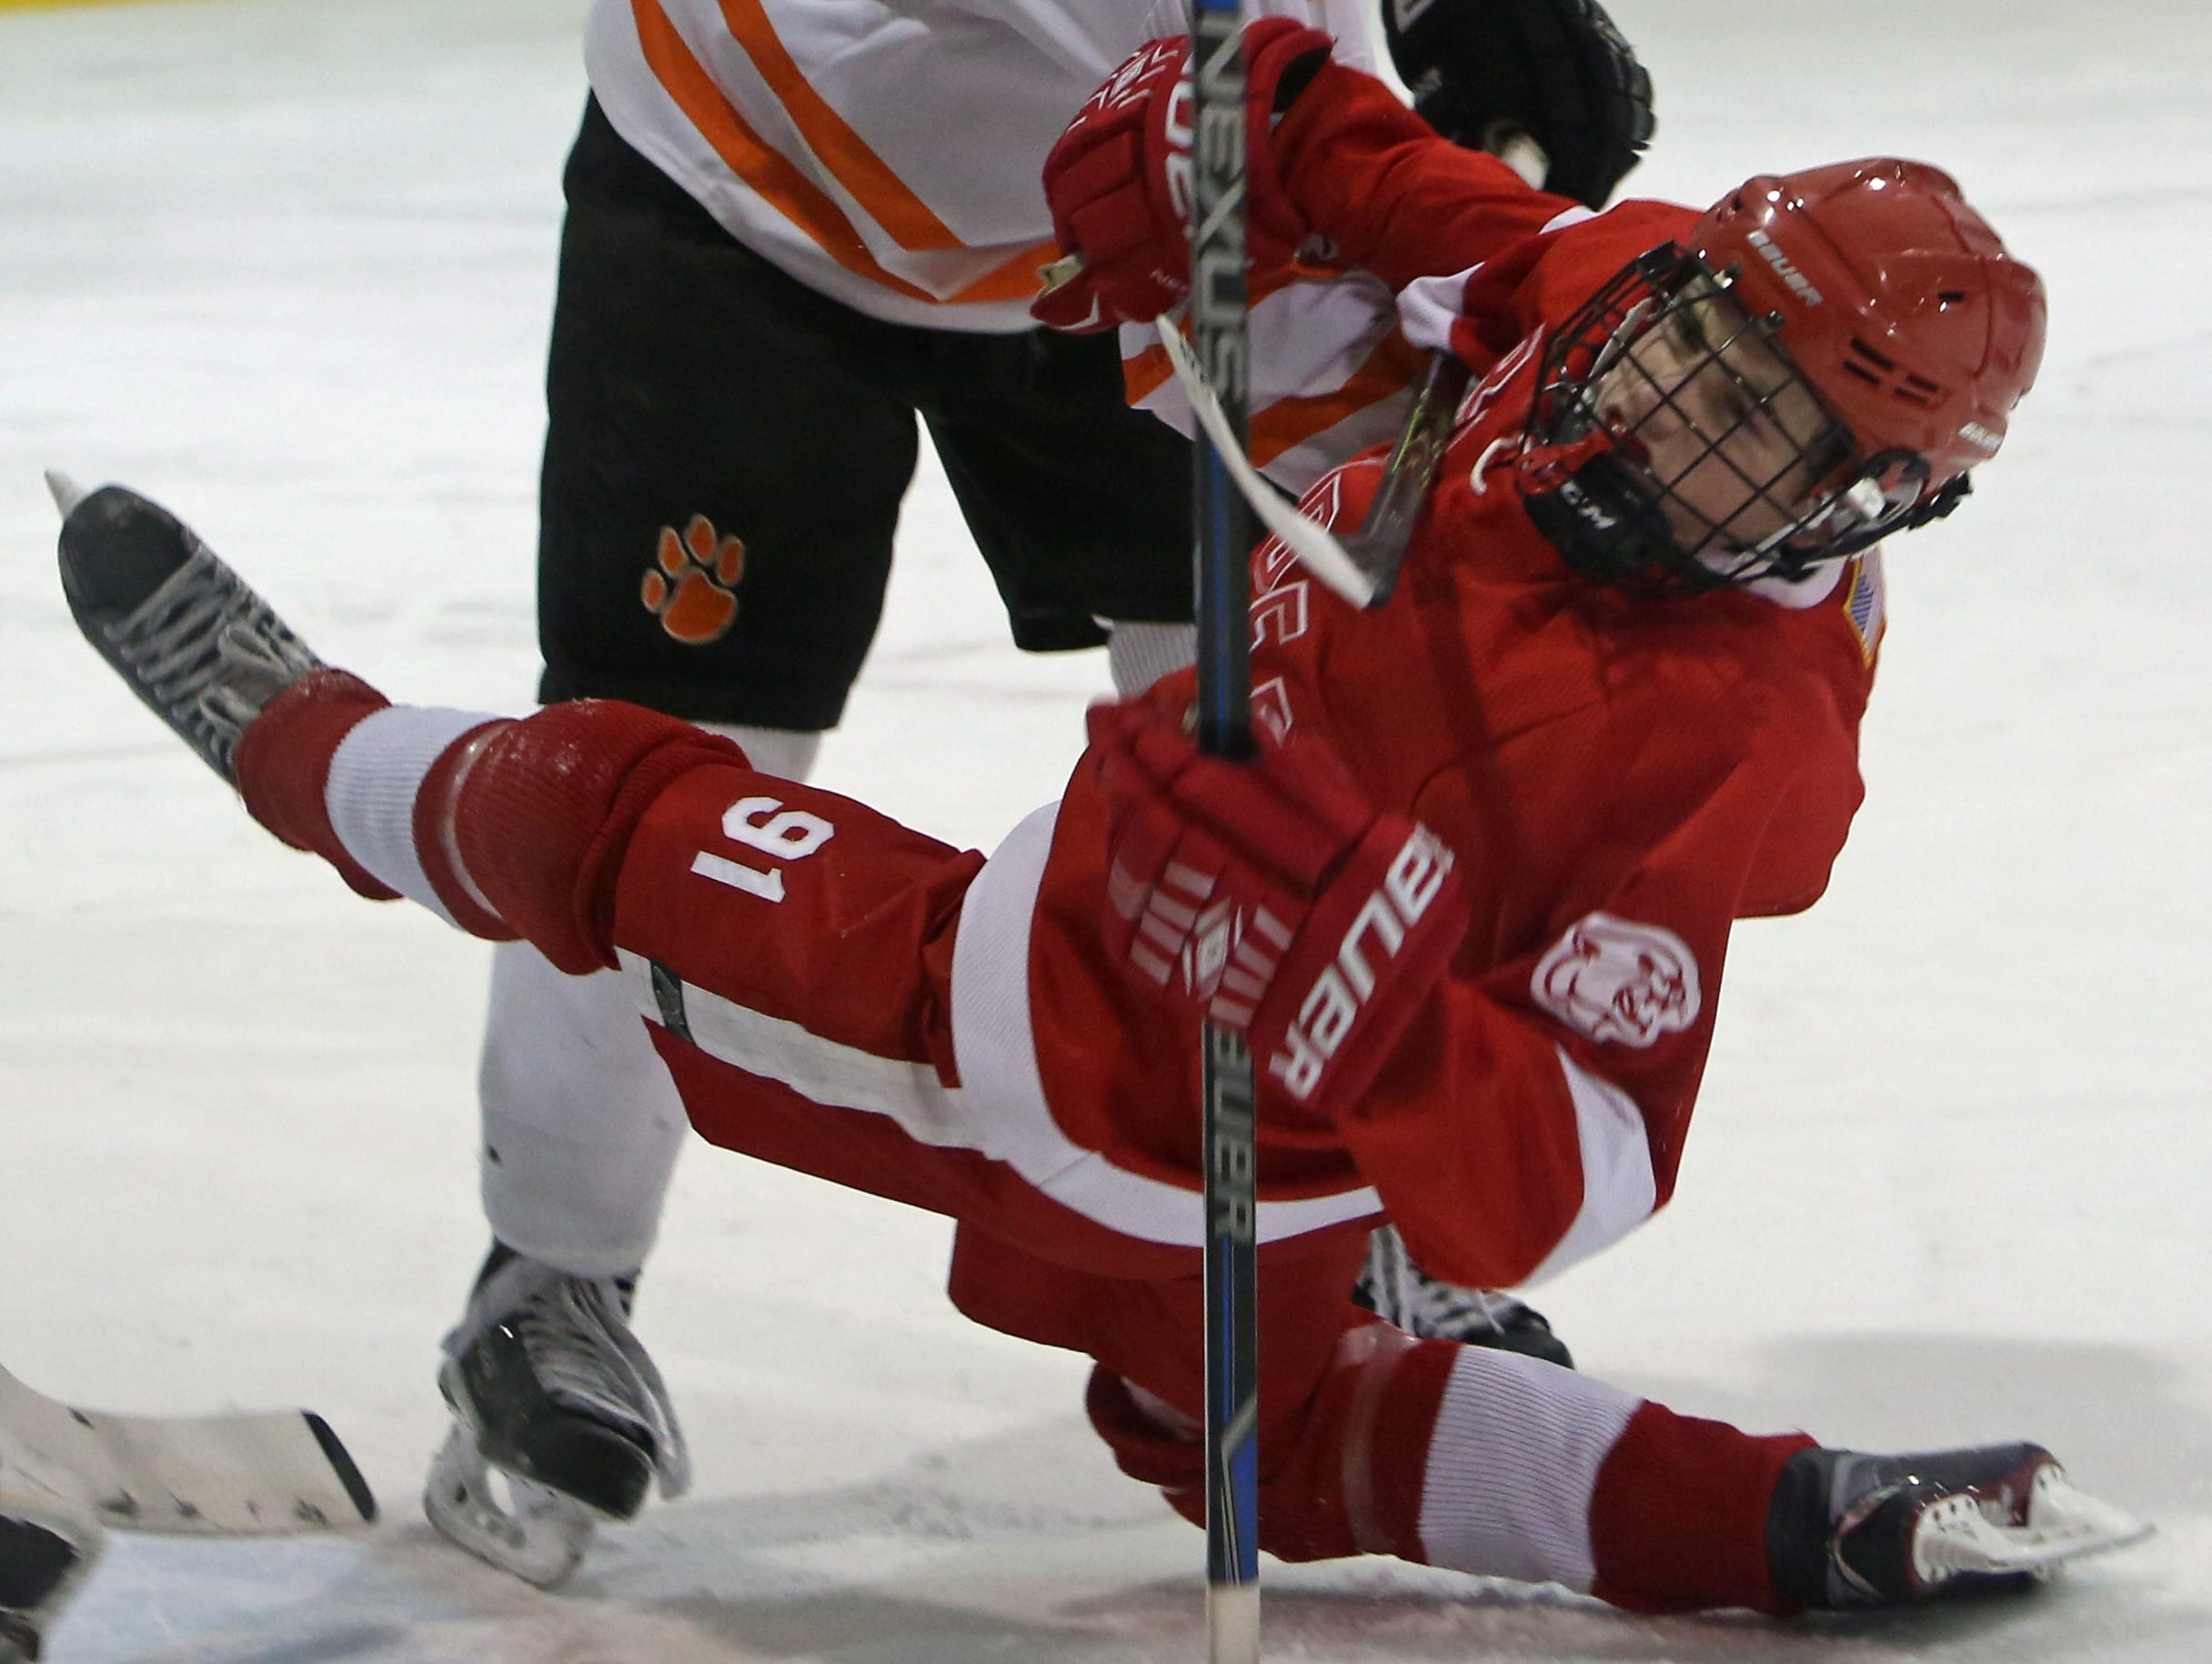 From left, White Plains' James Garnett (2) hits North Rockland's Christopher Hilliard (91) during hockey action at Ebersole Ice Rink in White Plains Jan. 7, 2016. The game ended in a 4-4 tie.